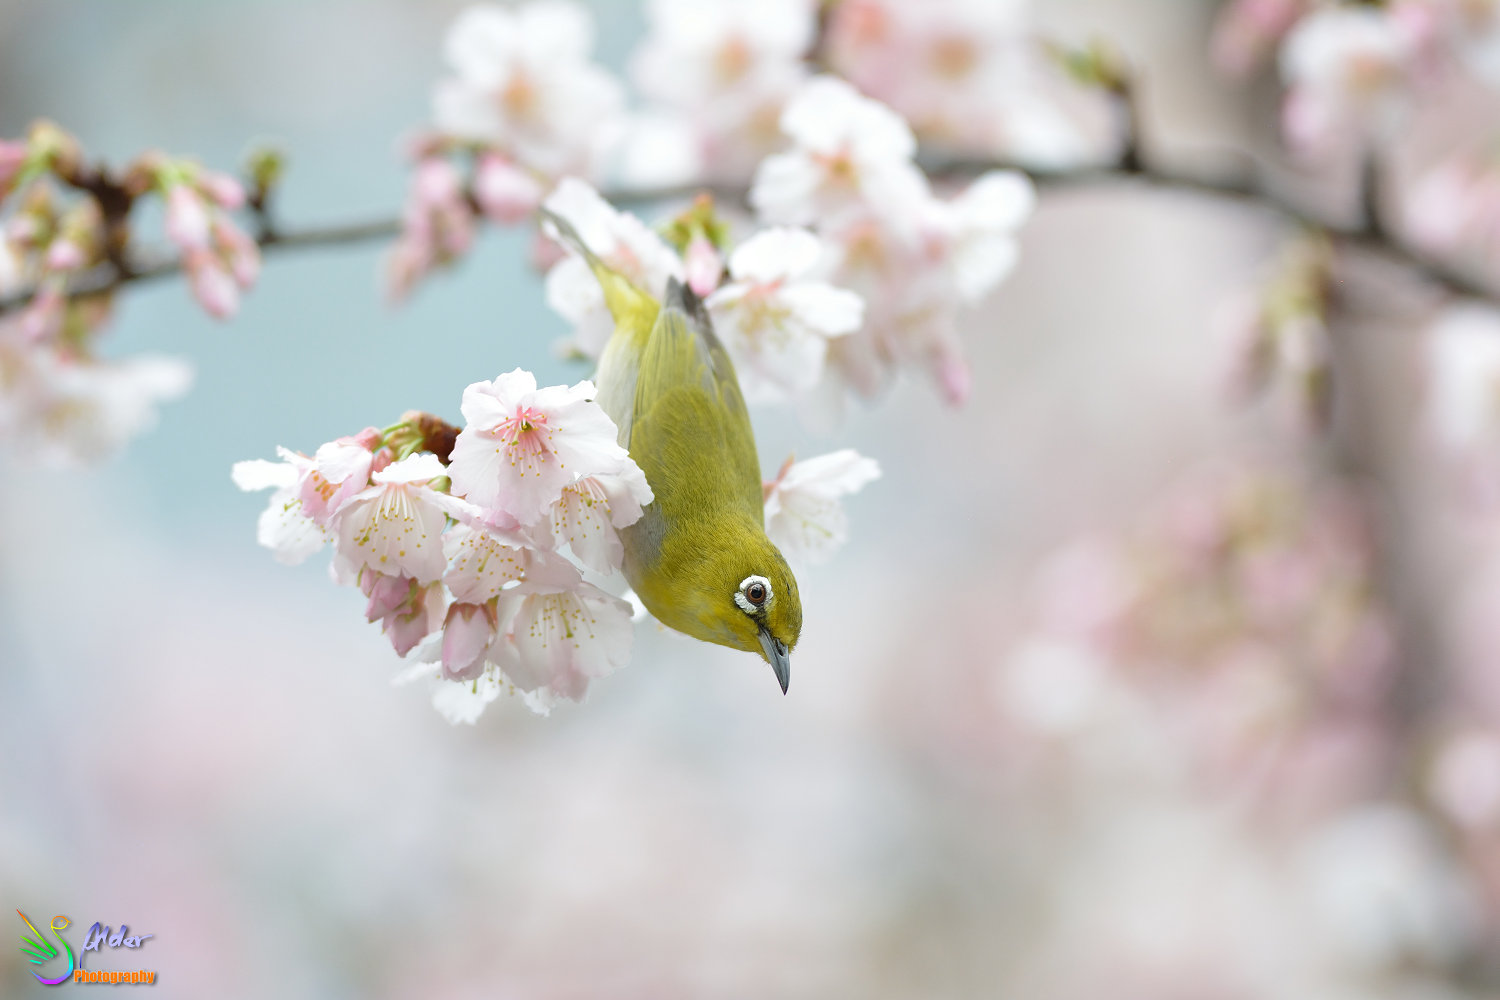 Sakura_White-eye_6816